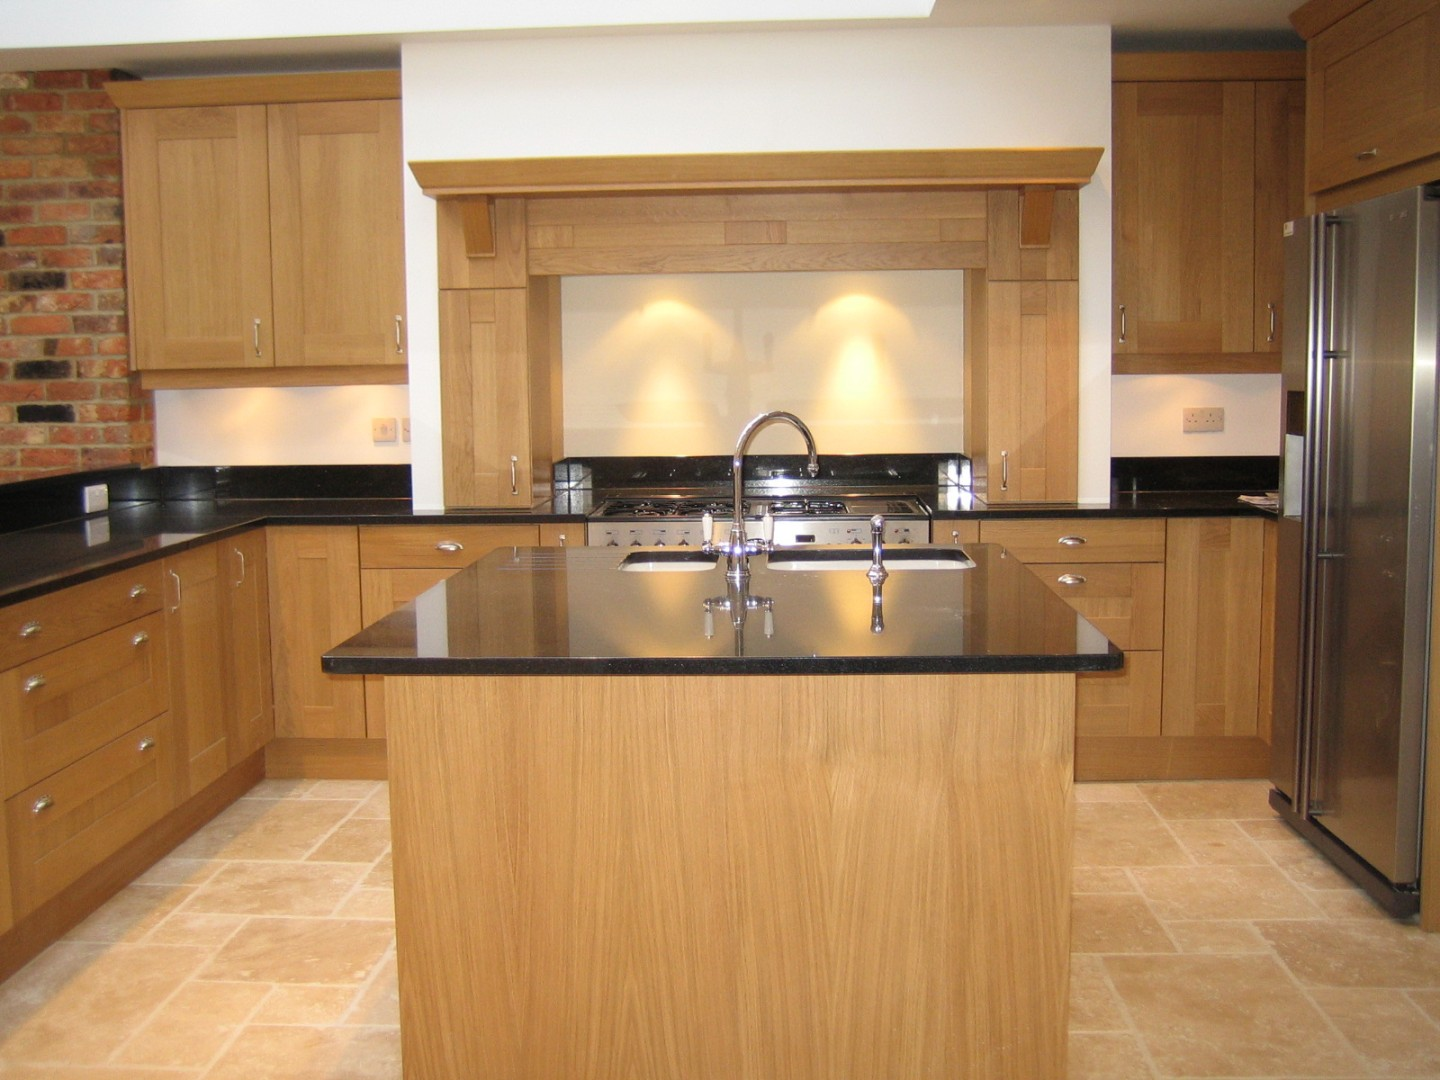 Outstanding Kitchen with Oak 1440 x 1080 · 270 kB · jpeg